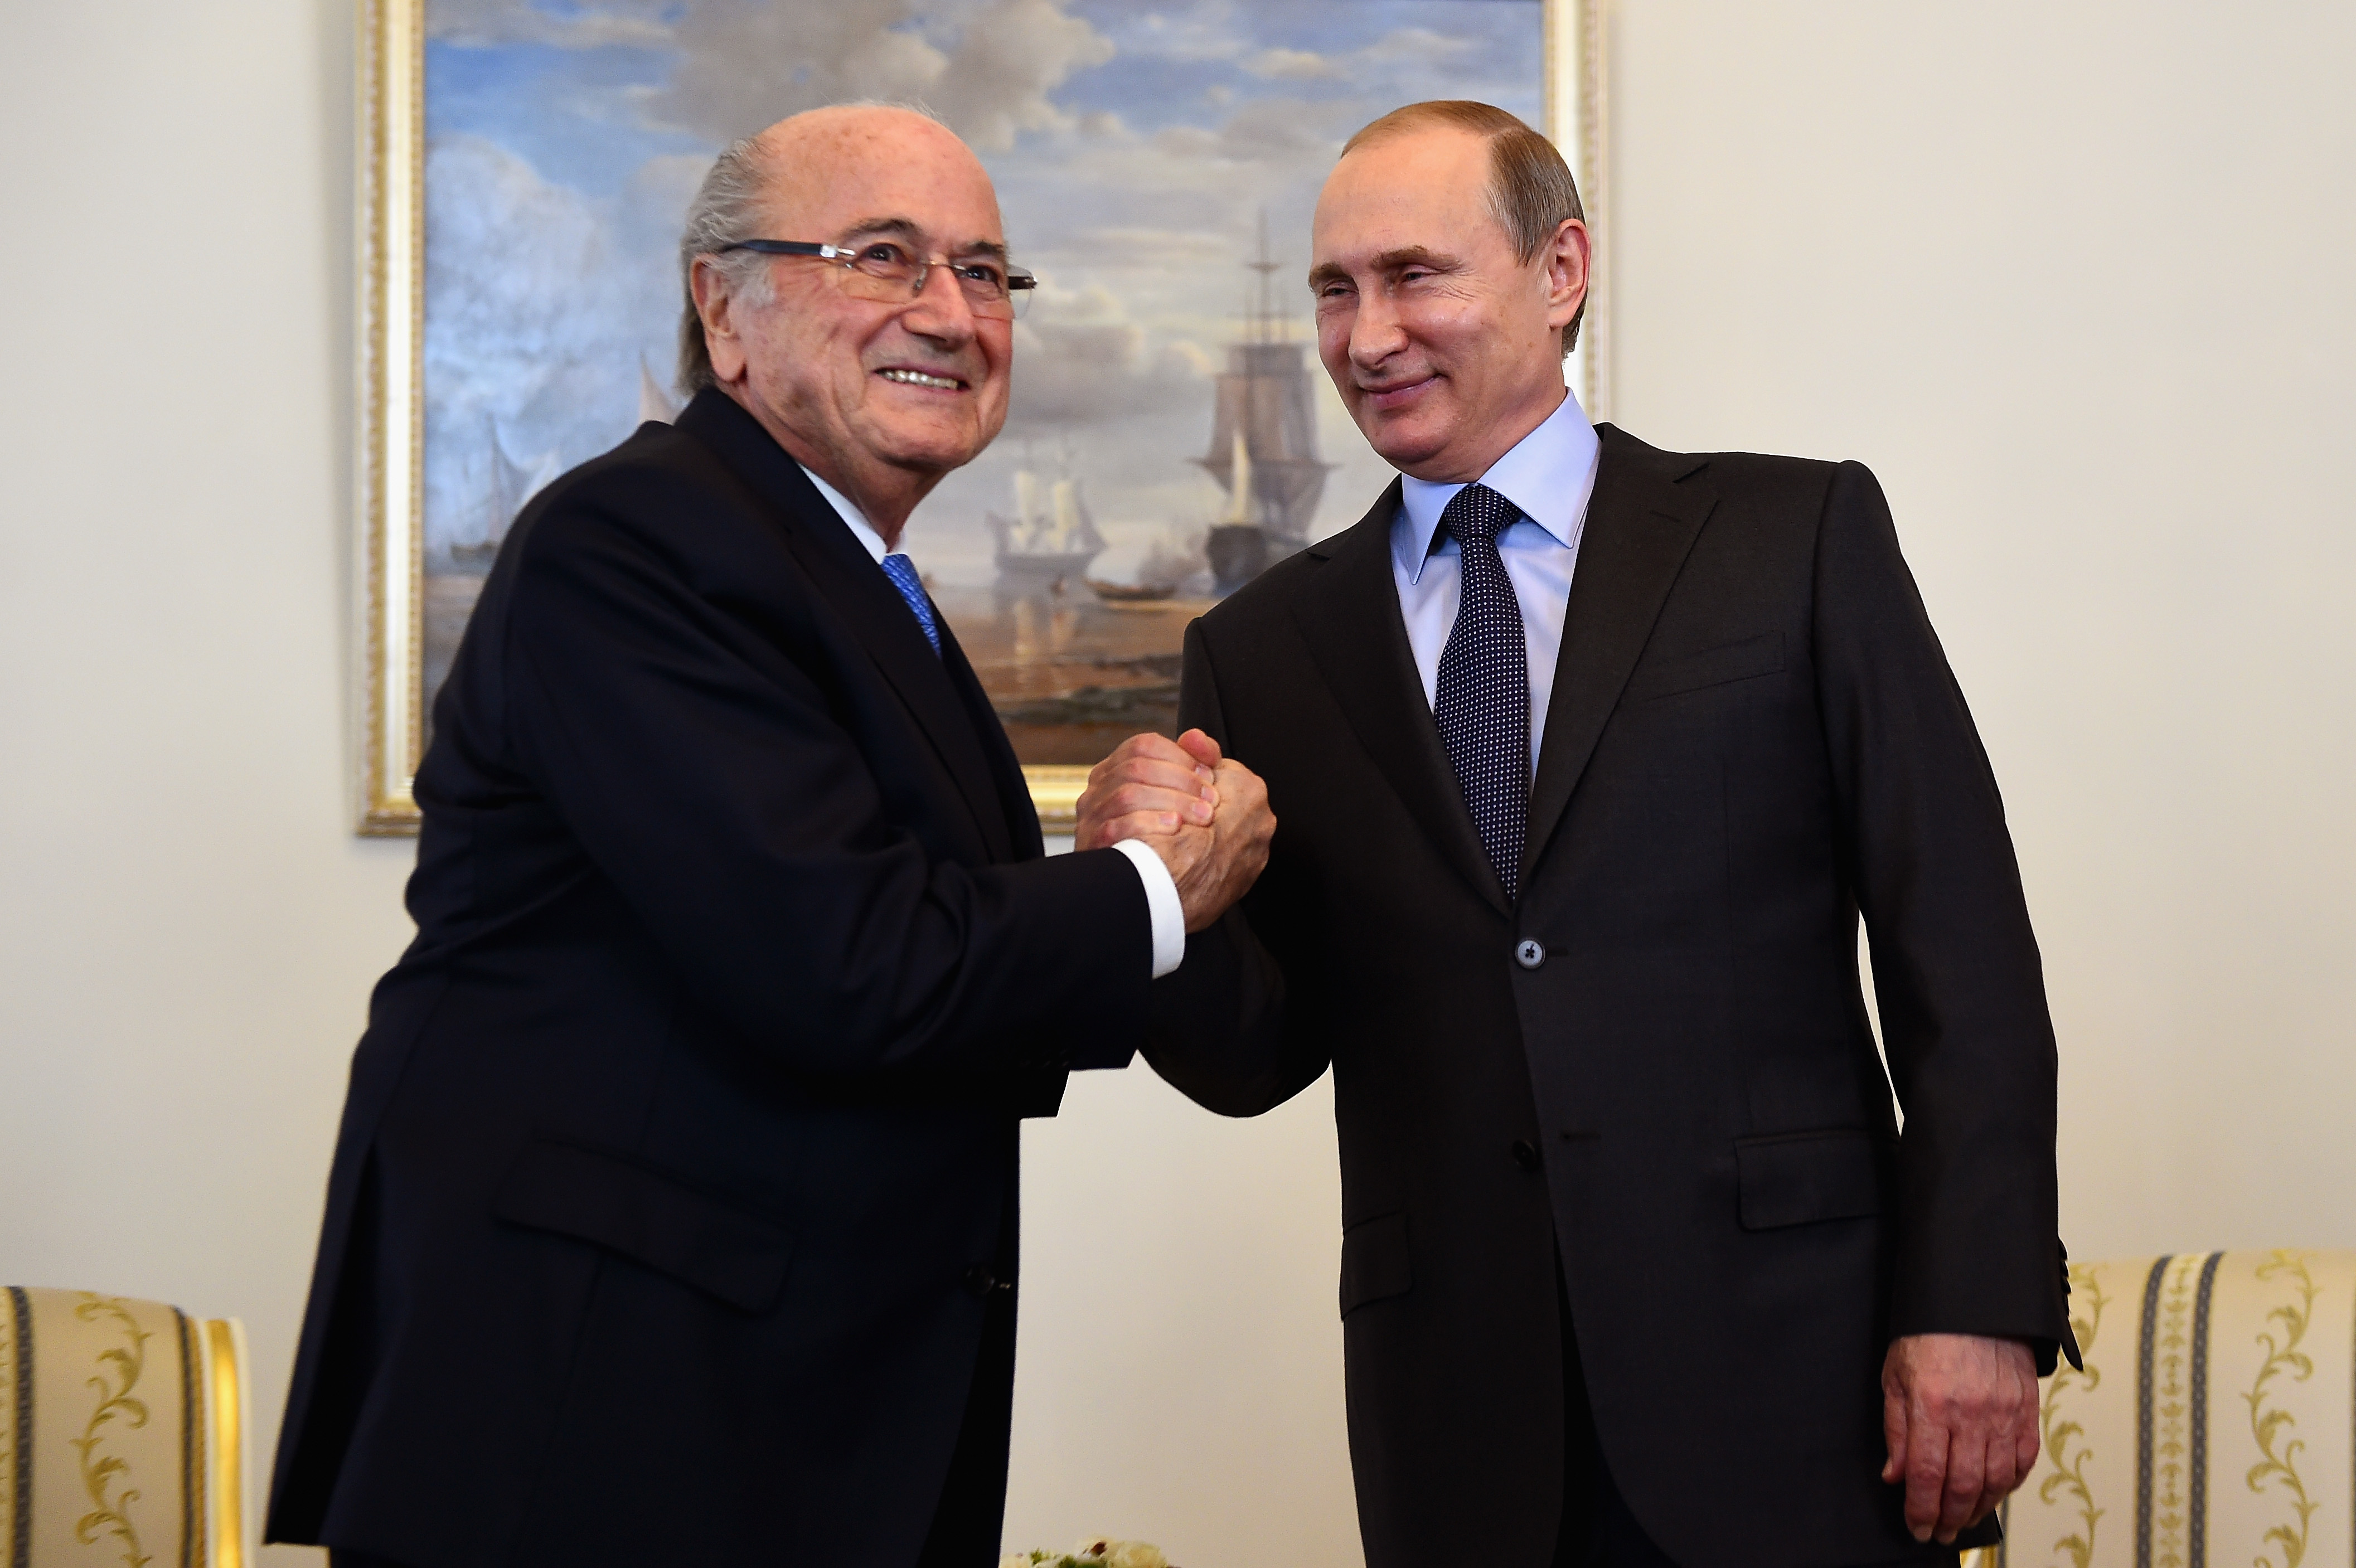 FIFA President Joseph S. Blatter shakes hands with Vladimir Putin, President of Russia ahead of the Preliminary Draw of the 2018 FIFA World Cup in Russia at The Konstantin Palace on July 25, 2015 in Saint Petersburg, Russia.